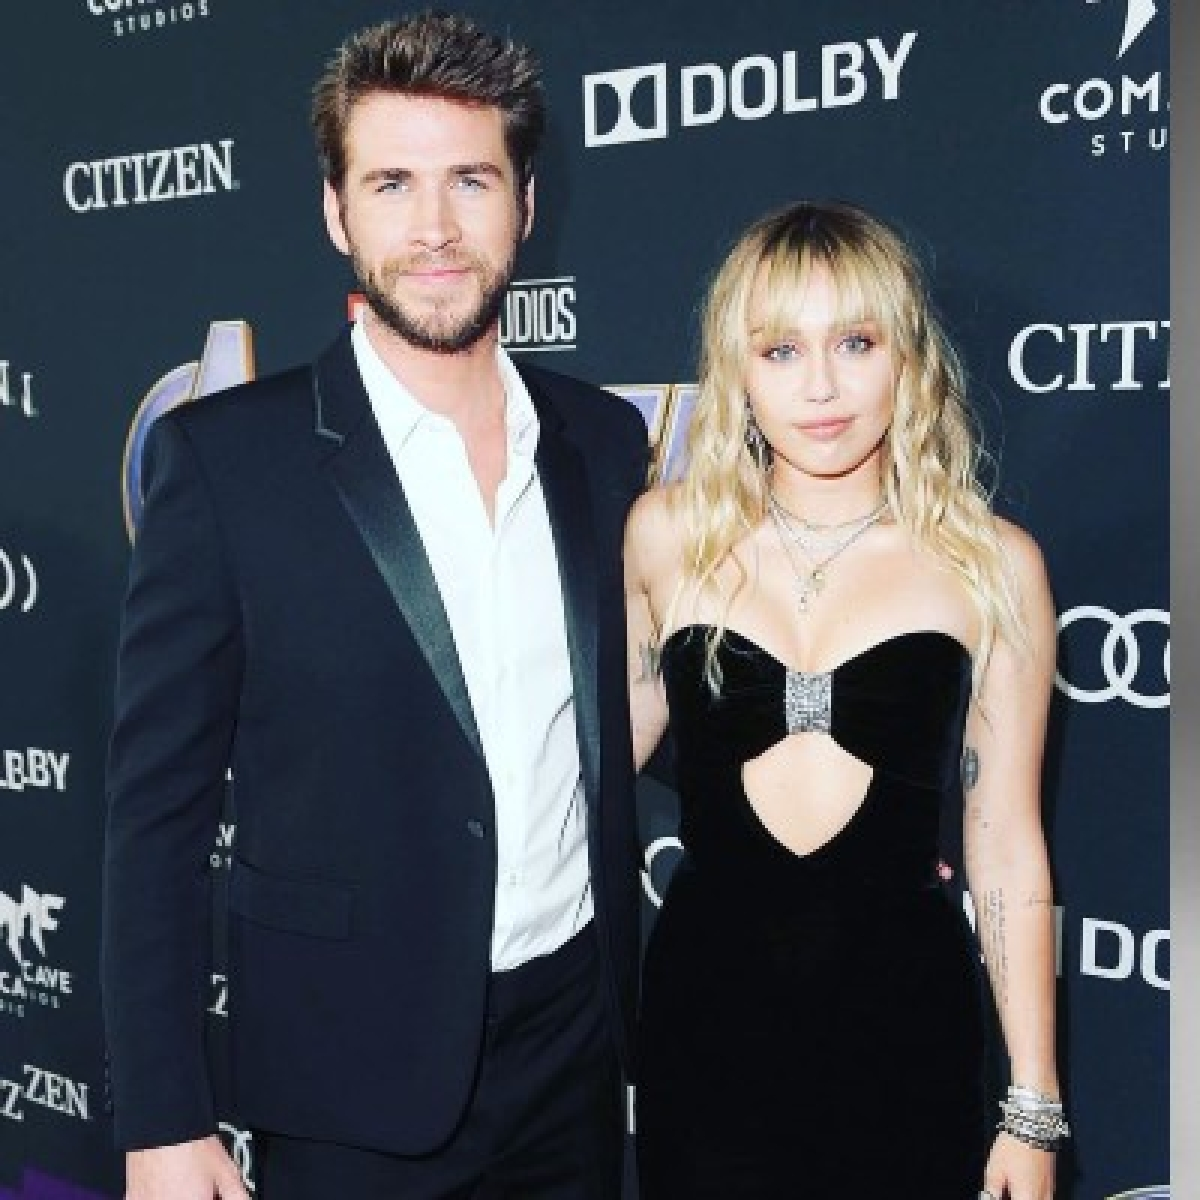 Liam Hemsworth 'deserves much better', says sister-in-law Elsa Pataky